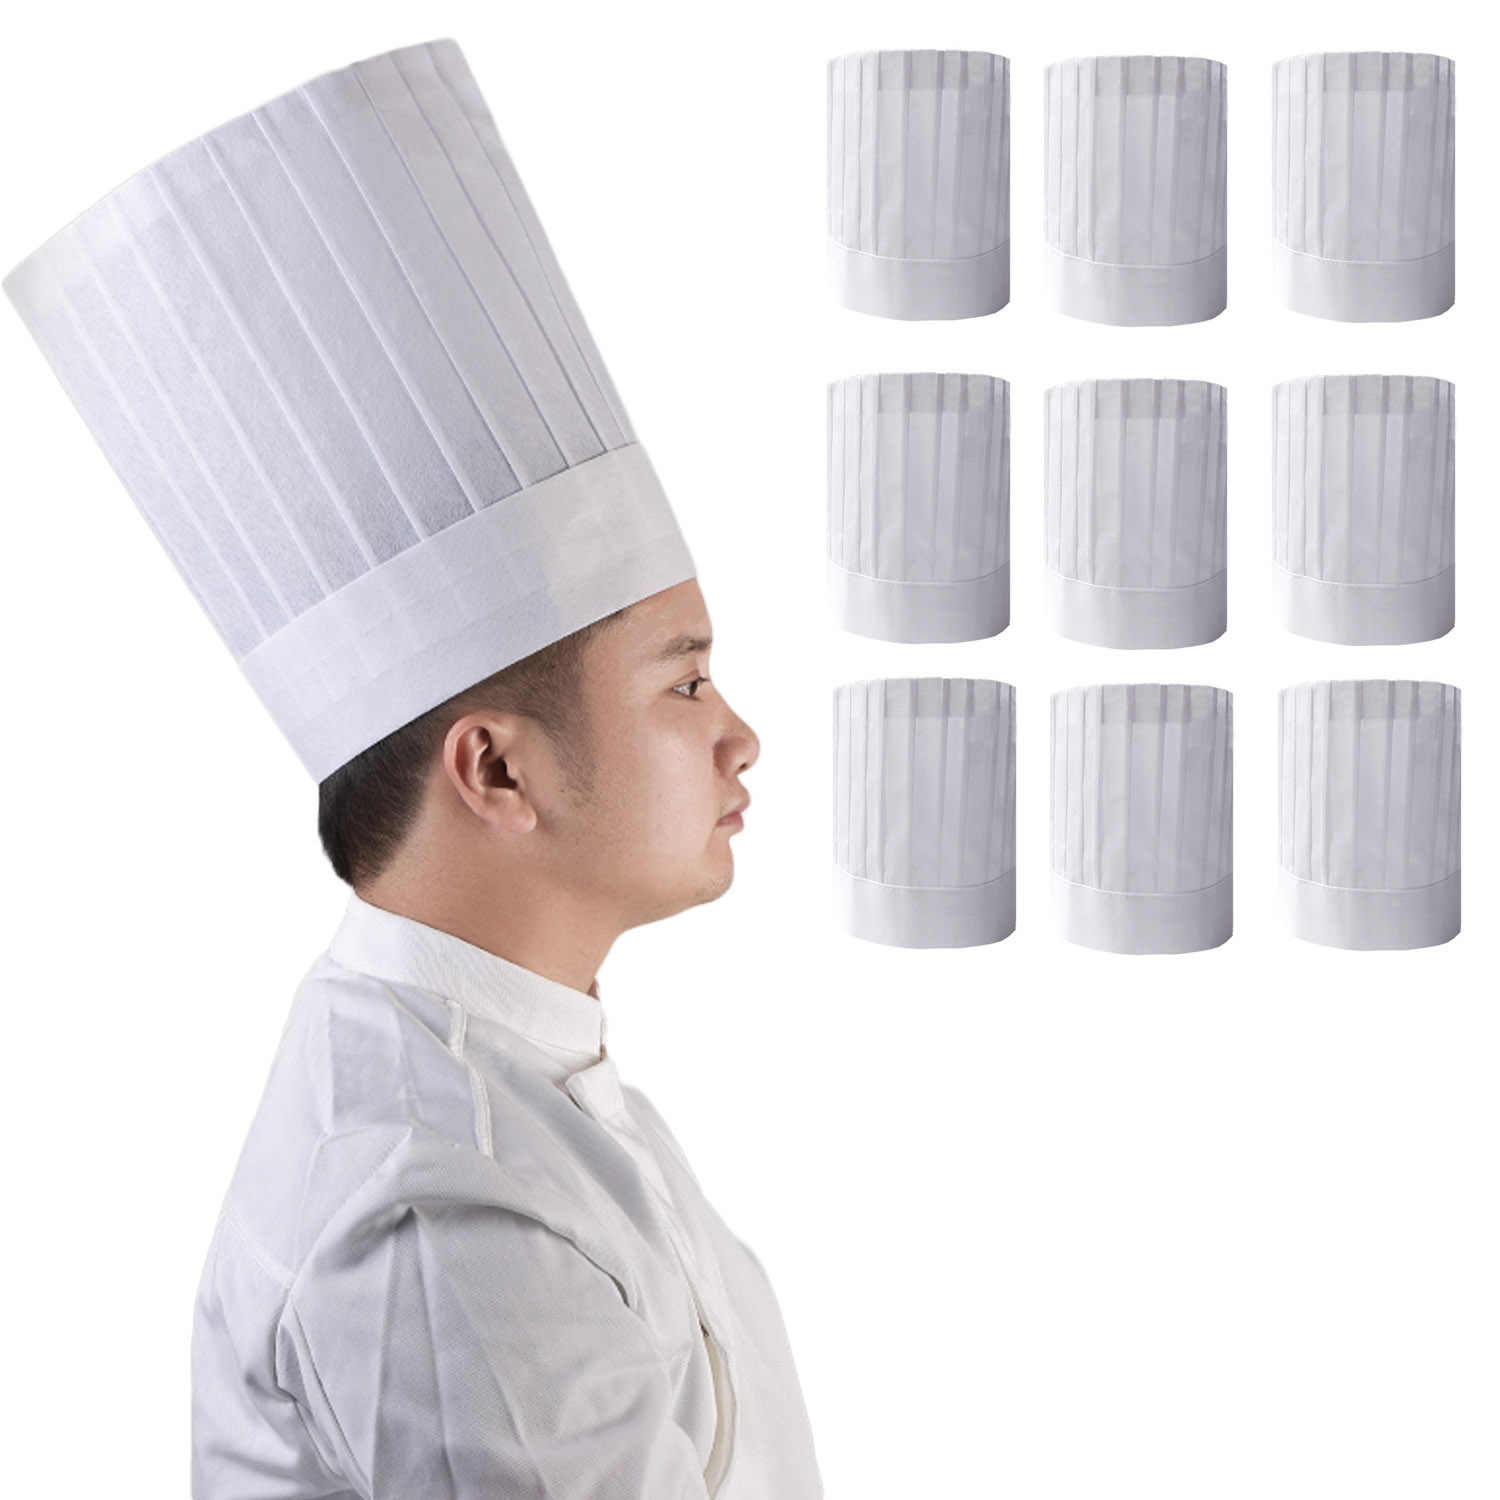 Behogar 10 Pcs Disposable Chef Hat Cooking Pastry Chef Cap Kitchen Supplies For Restaurants Home Kitchen Cooking Club